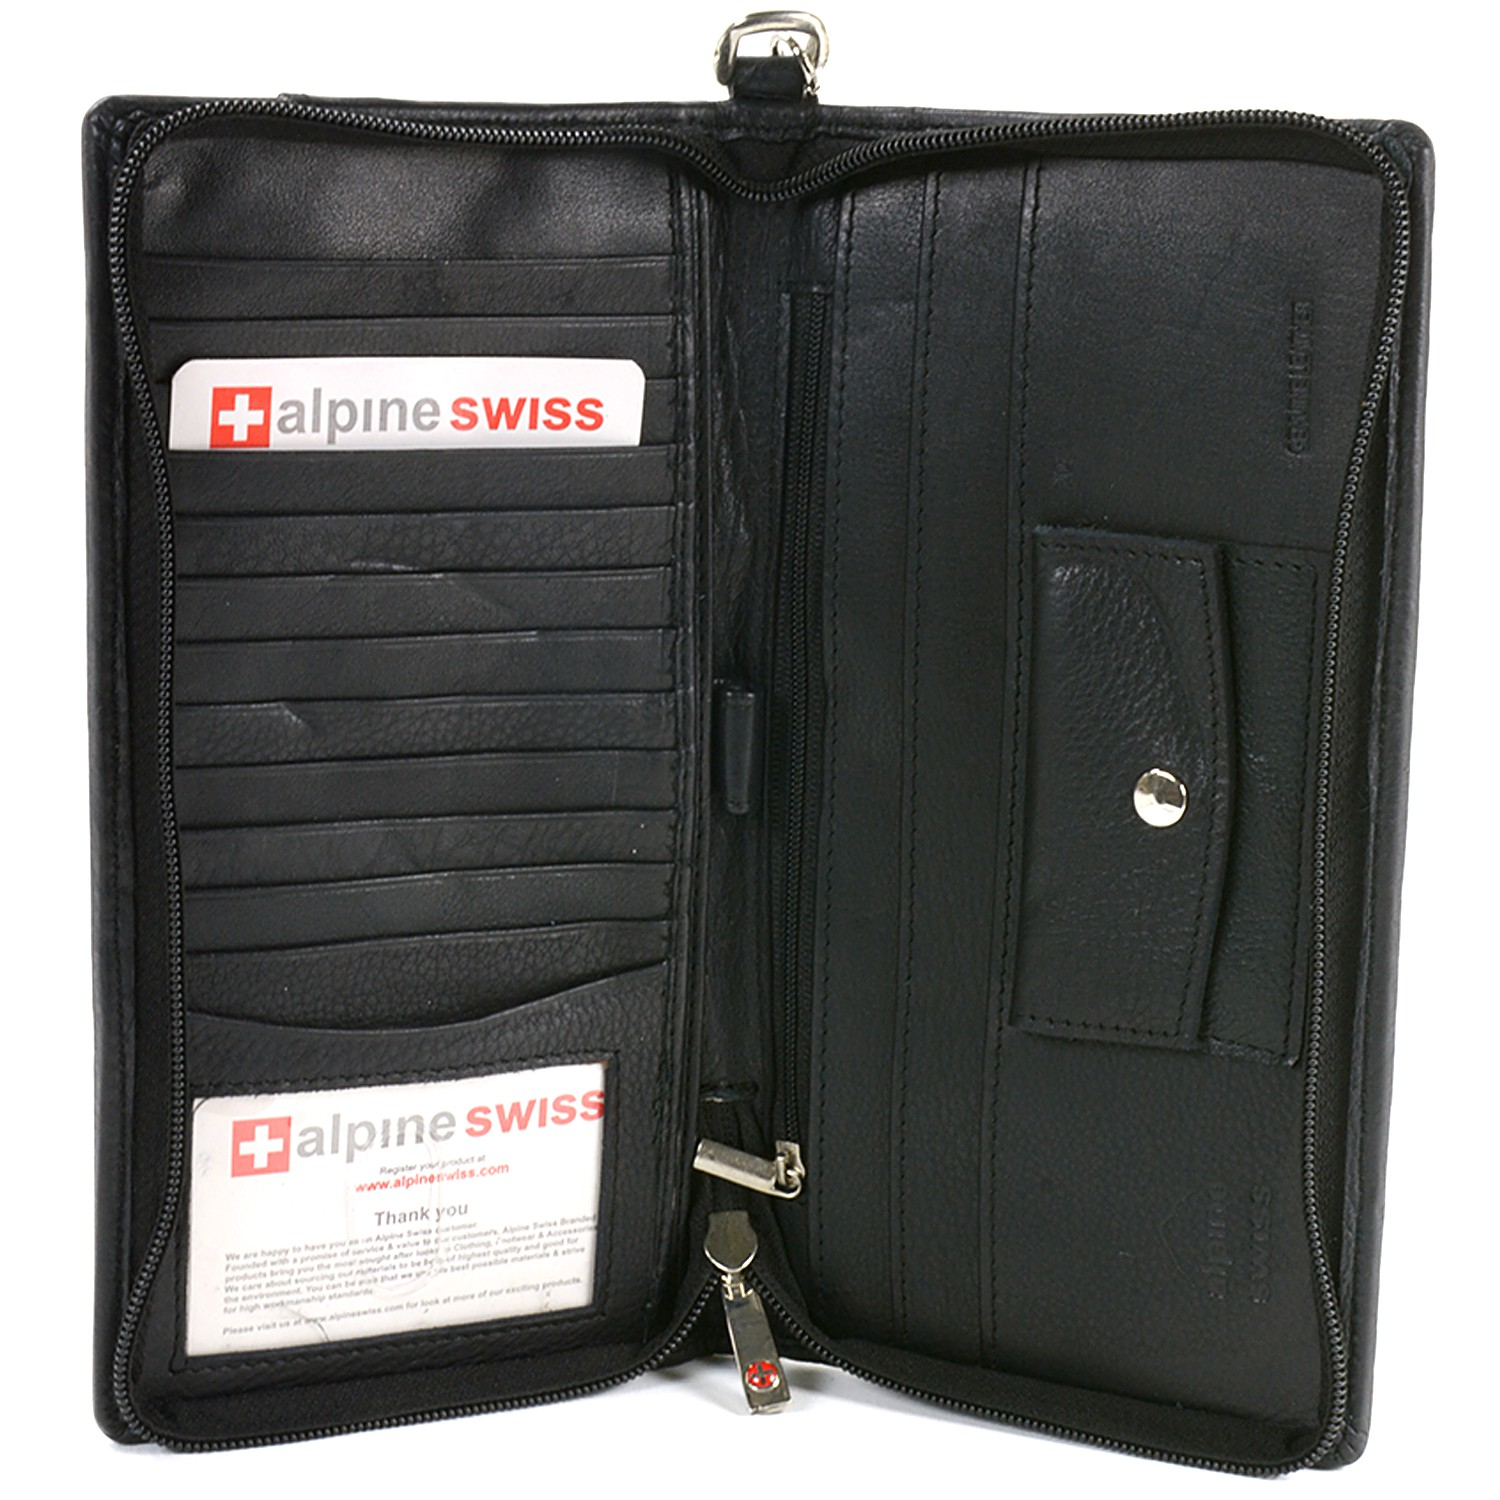 Alpine Swiss Passport Case Leather Organizer Zippered